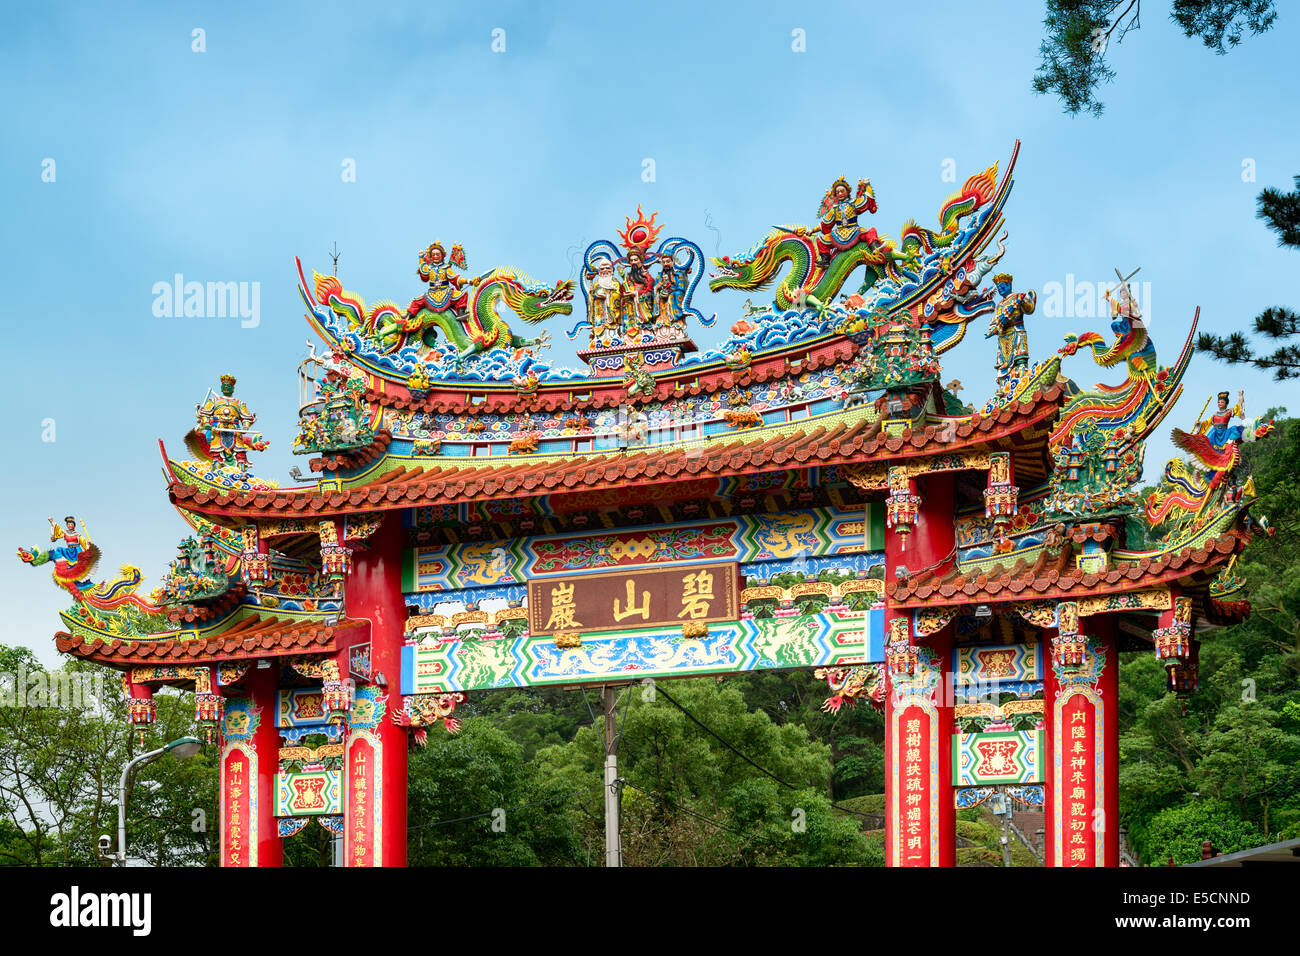 Entrance gate  of a Bishan Temple in Taipei. - Stock Image